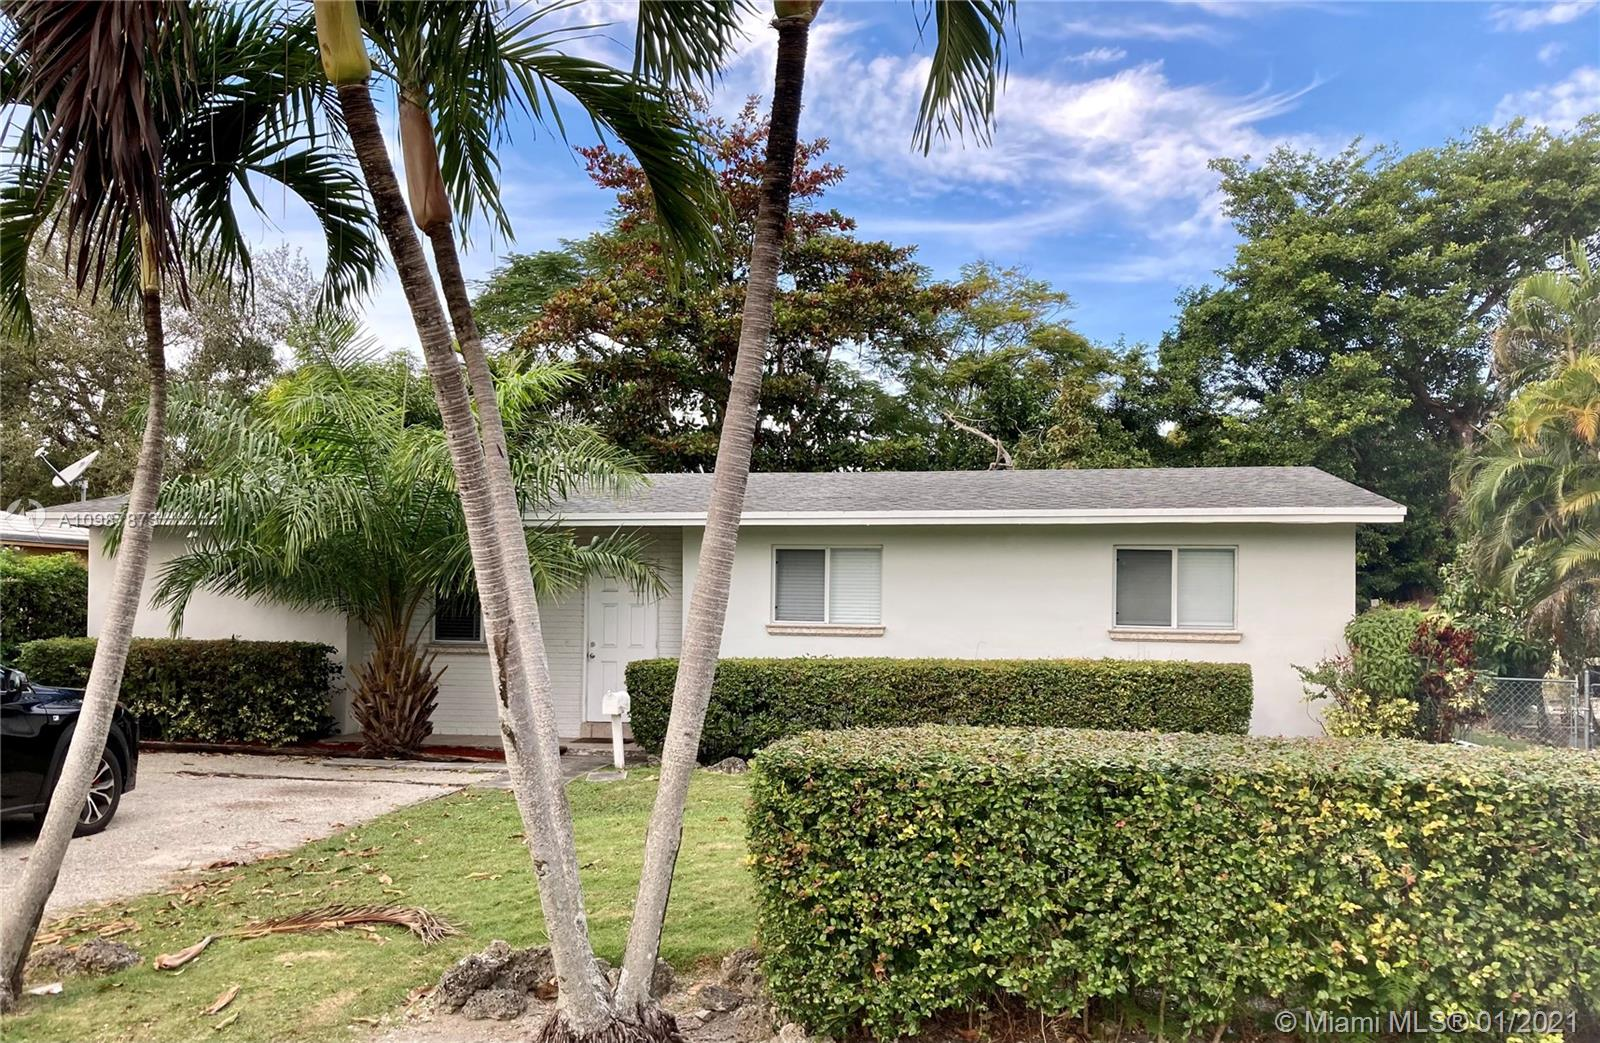 Wonderful 4/2 on great street just blocks from University of Miami. Great layout with tile floors and separate laundry room. Excellent rental income opportunity or make this your lovely new home! Large lot with mature trees & plenty of room for expansion. Fabulous location close to shopping both in Coral Gables and South Miami.